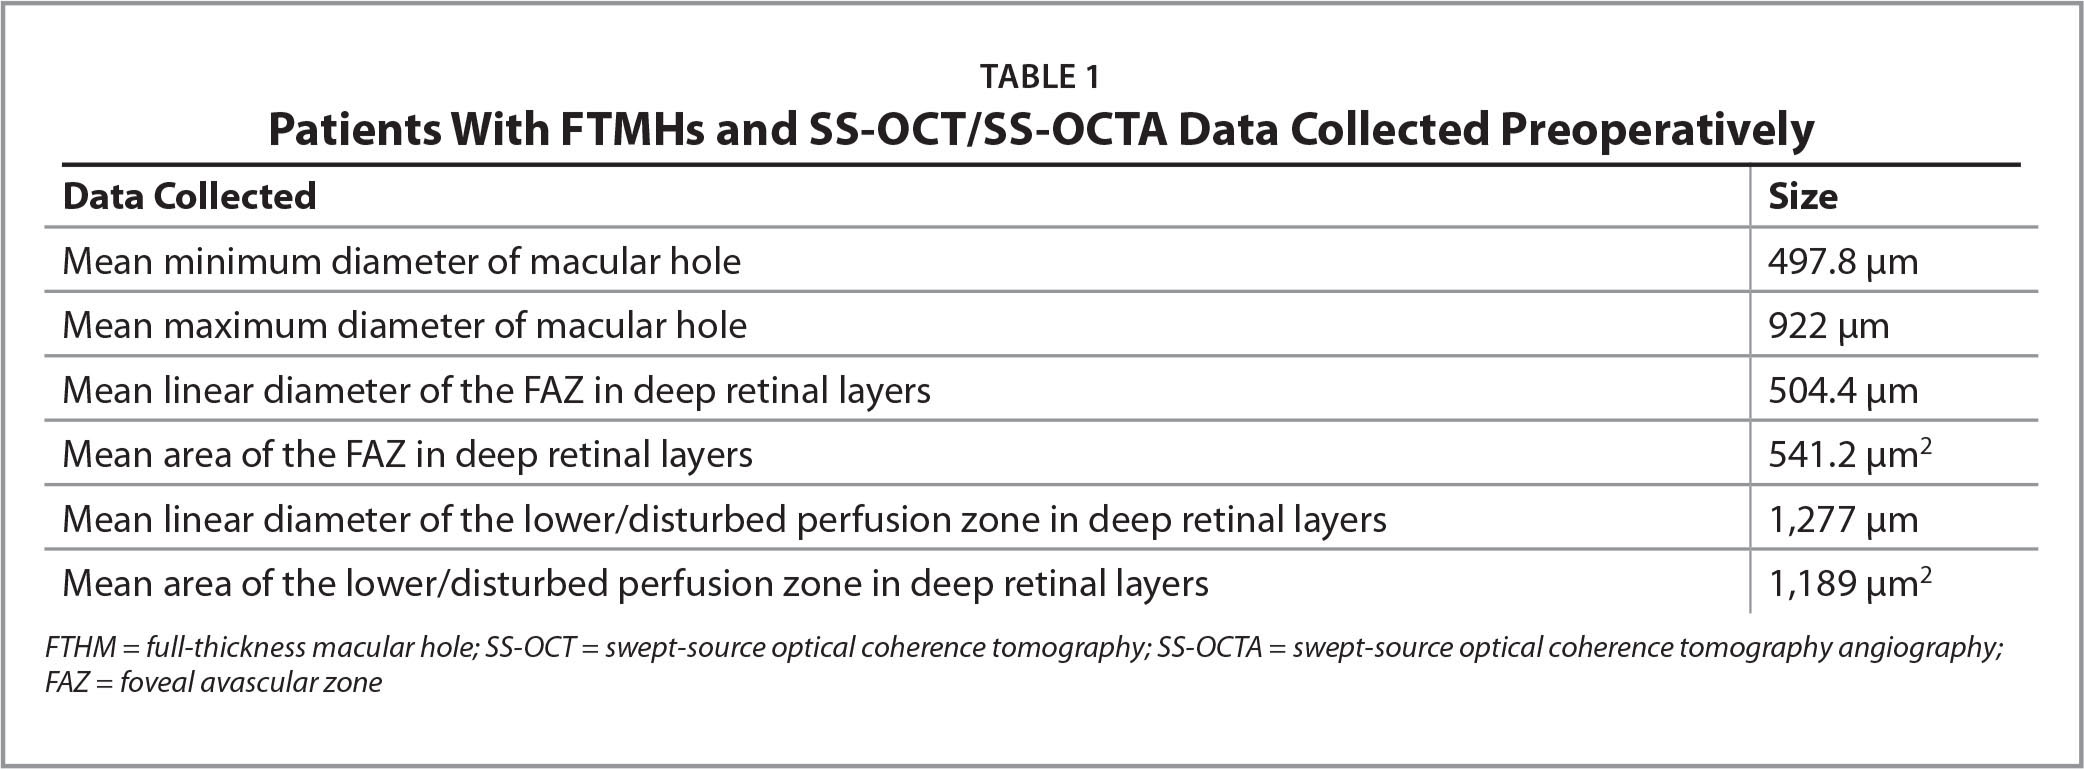 Patients With FTMHs and SS-OCT/SS-OCTA Data Collected Preoperatively